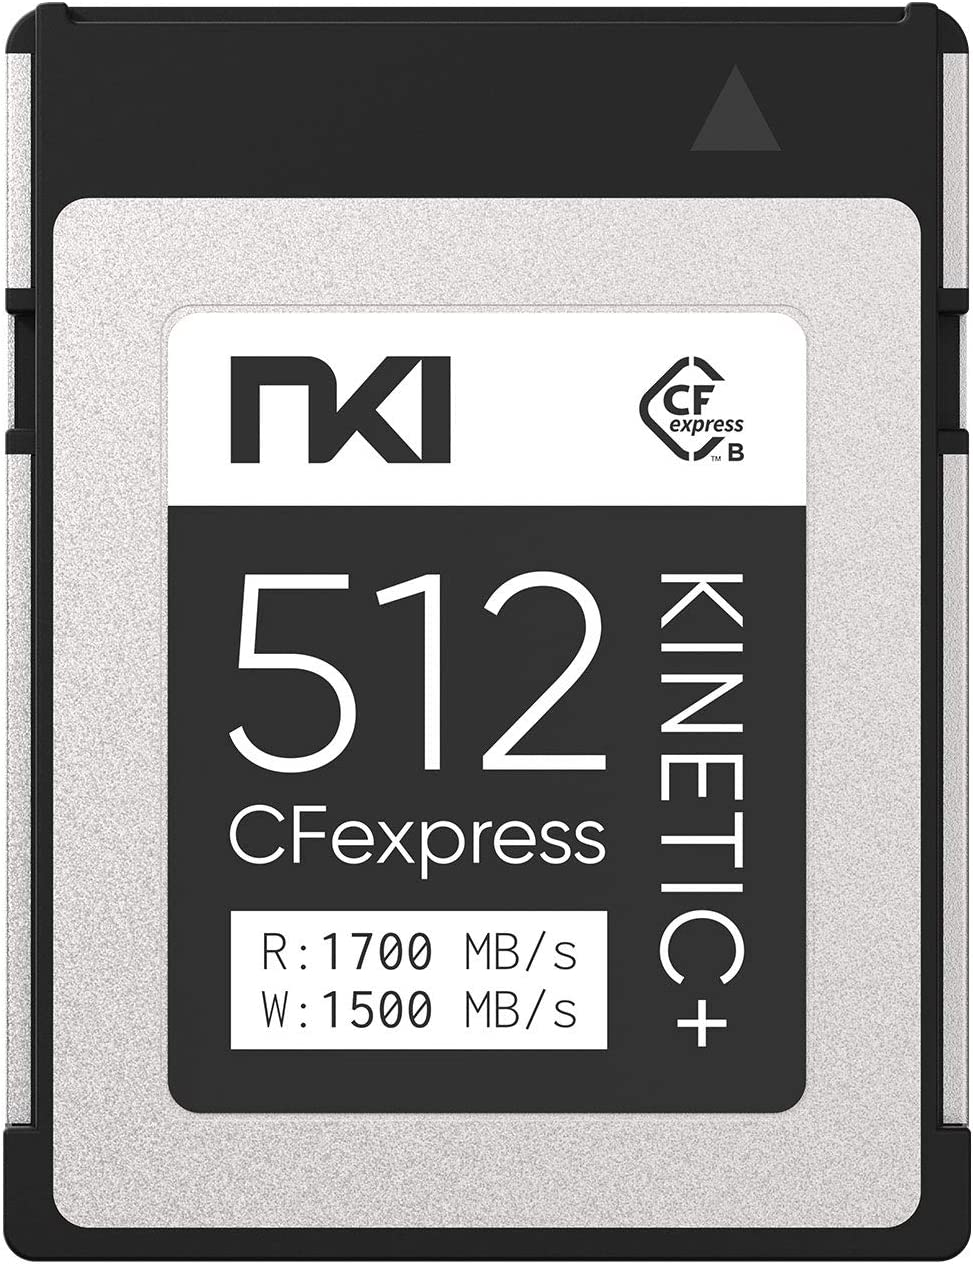 NKI 512GB Kinetic Plus CFexpress Type B Memory Card - Optimized for 8K RAW Recording, up to 1700MB/s - Compatible with Canon R5/R3/C300III/C500II, Nikon Z6/Z7/Z6&Z7II/Z9/D5/D6/D850/D500, Lumix S1/S1R